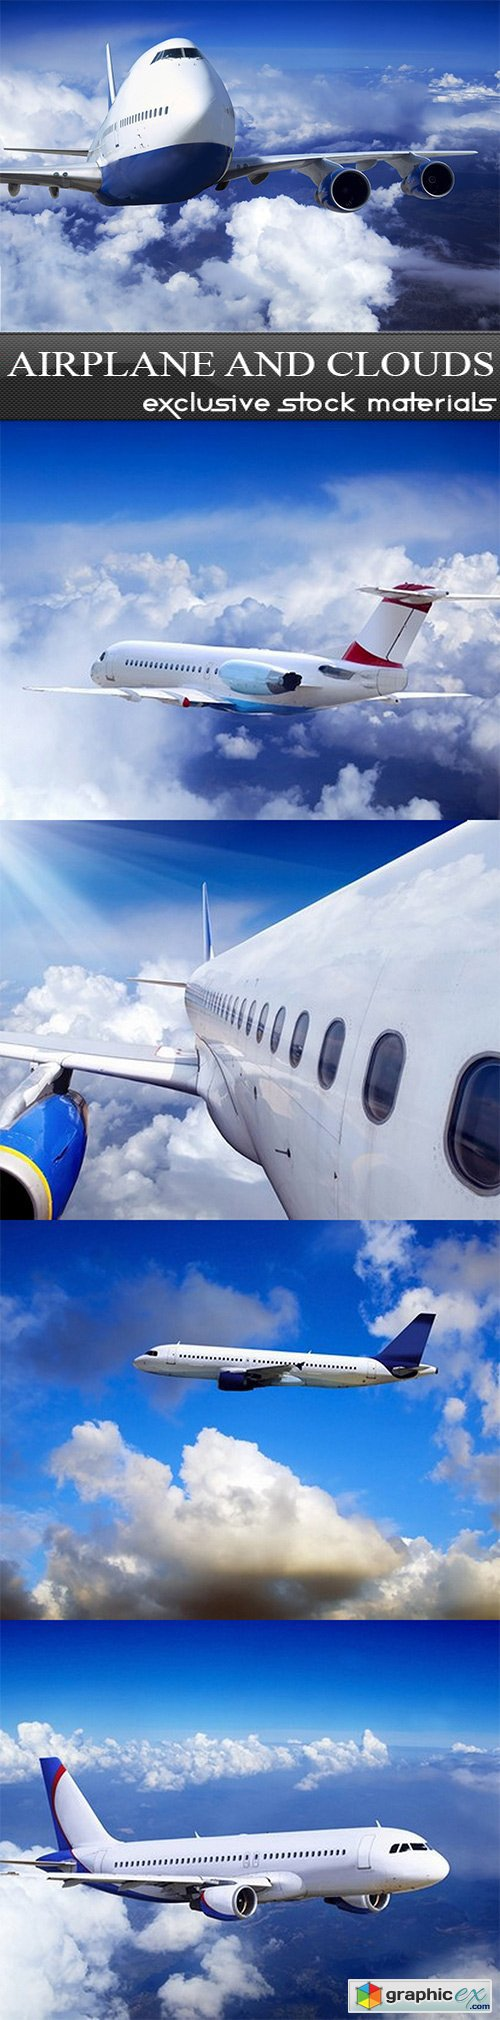 Airplane and Clouds - 5 UHQ JPEG